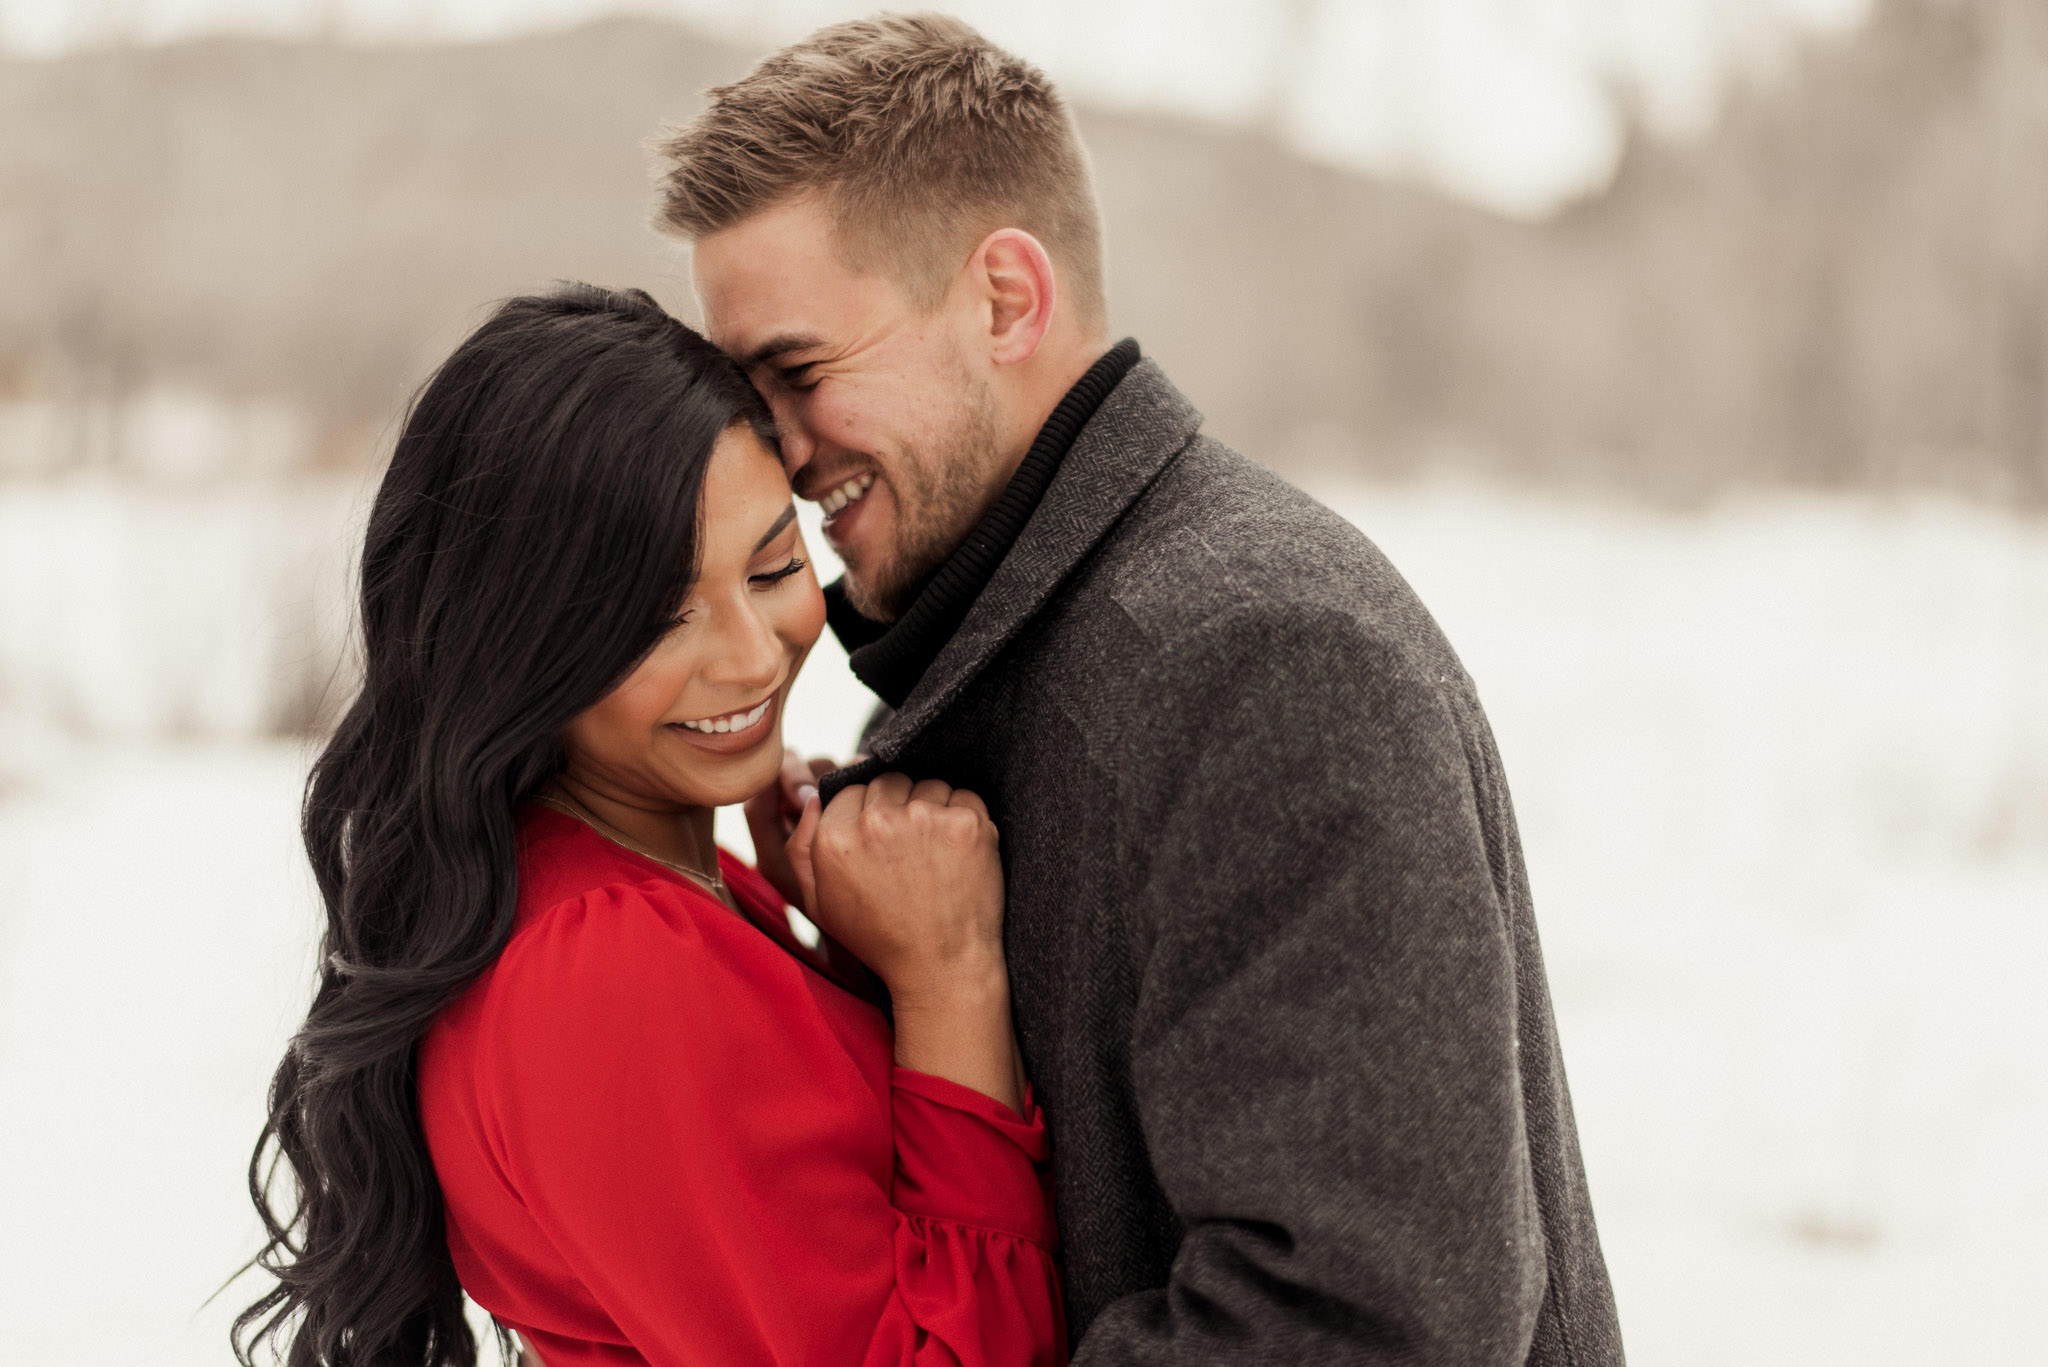 sandra-ryan-colorado-winter-snow-engagement-couples-valentines-red-houston-photographer-sm-27.jpg